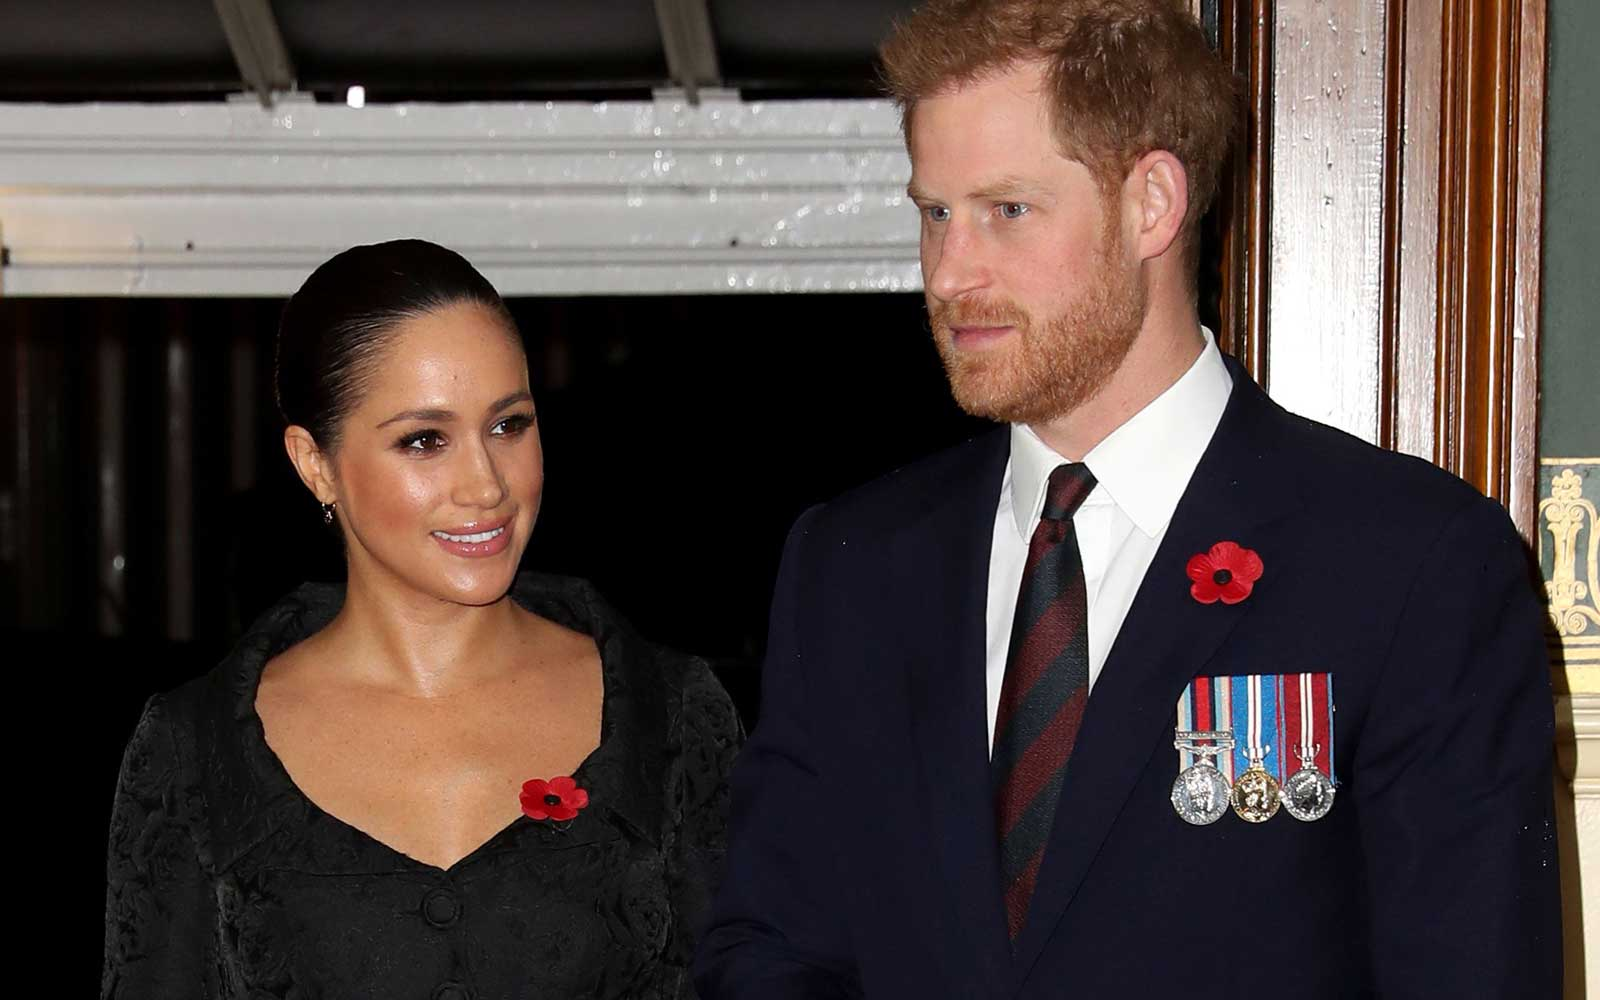 Prince Harry & Duchess Meghan of Sussex